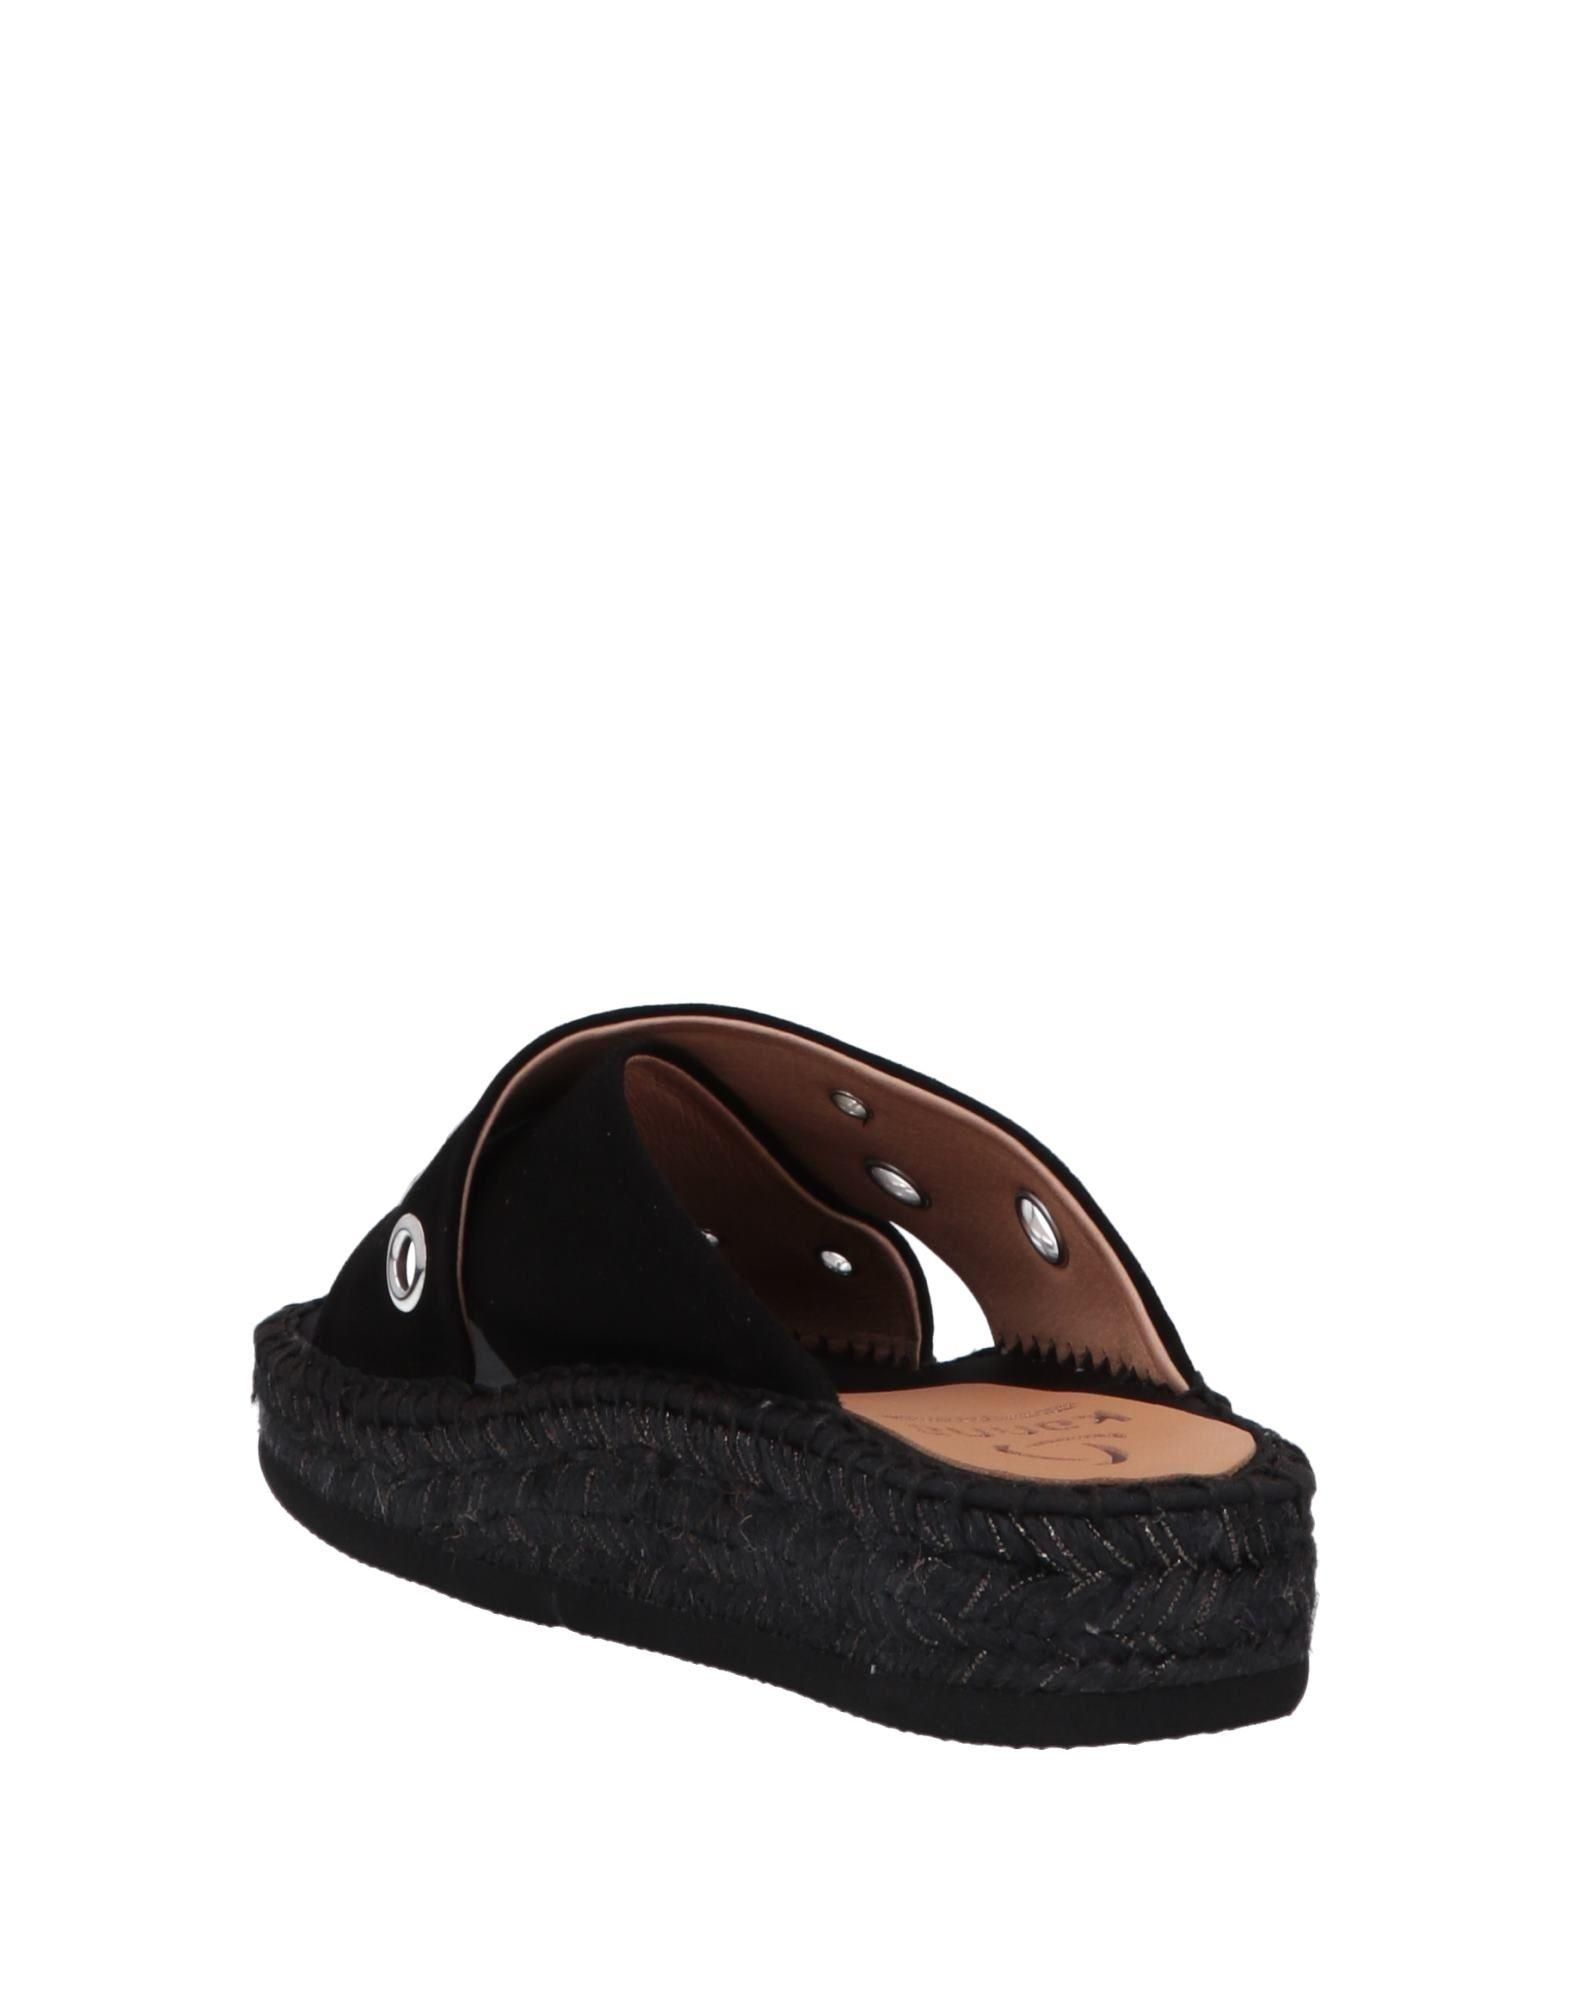 e076177998c43a Kanna Sandals in Black - Lyst